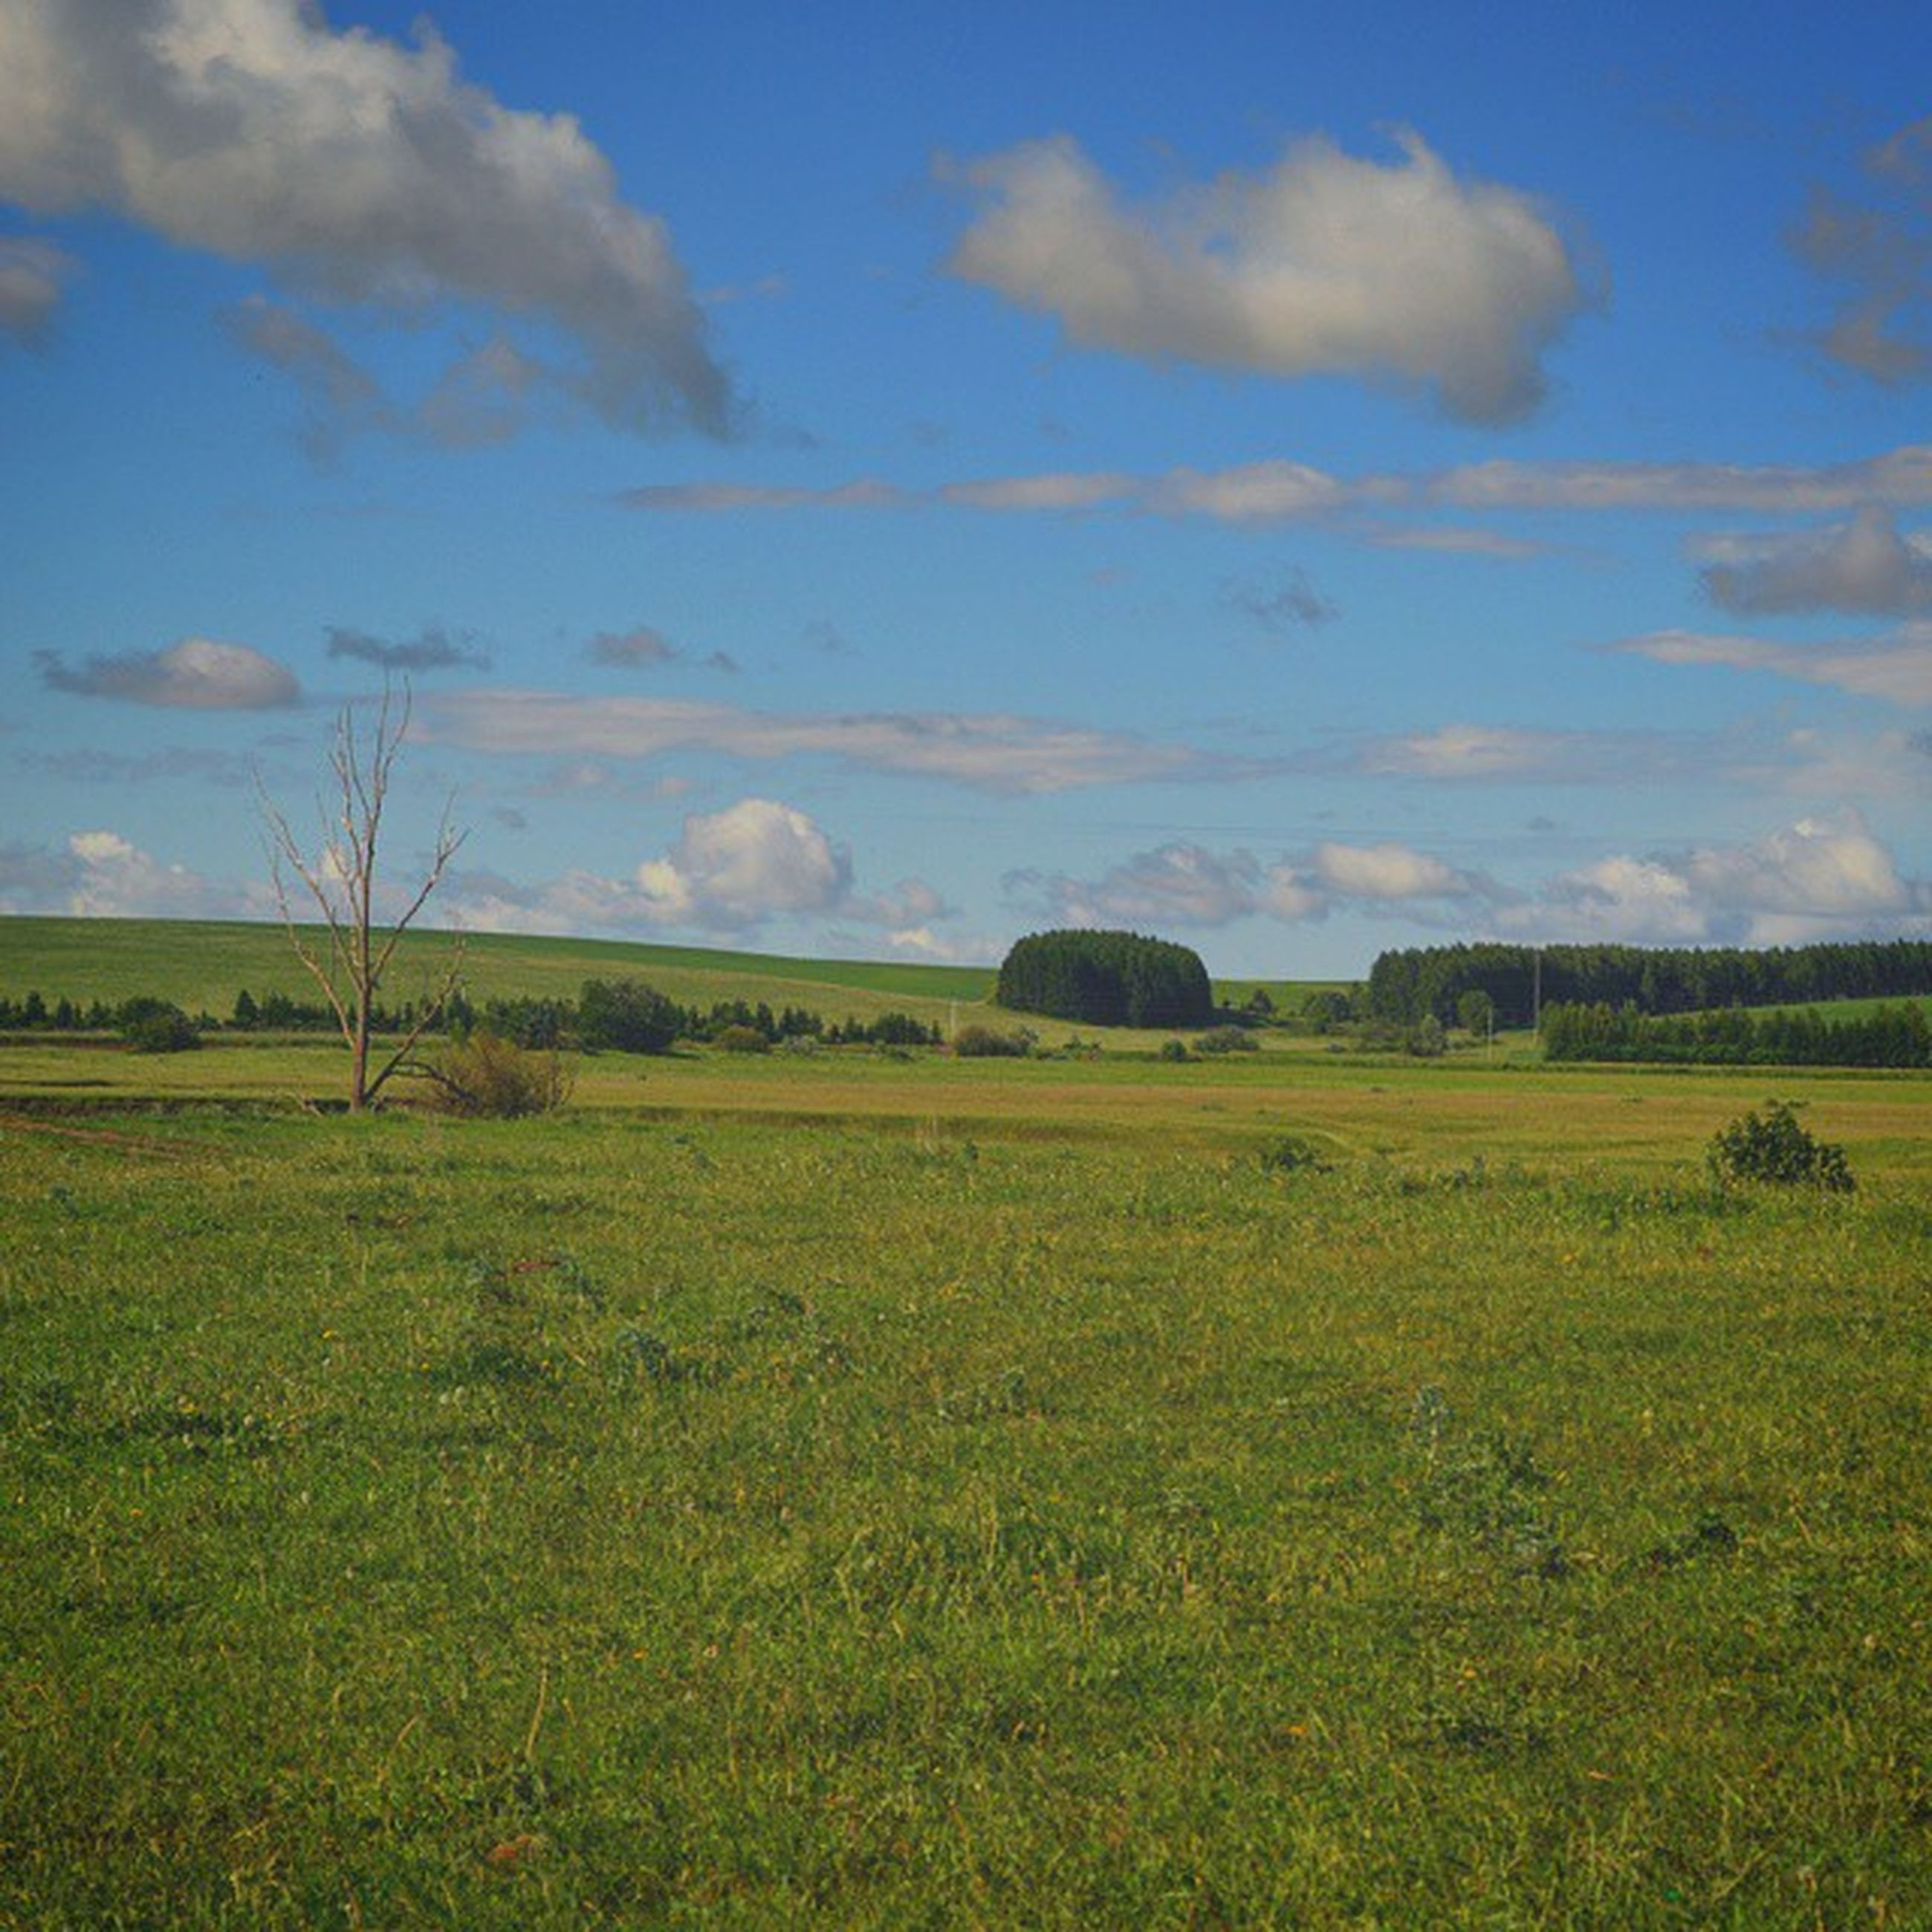 landscape, field, grass, sky, tranquil scene, tranquility, scenics, grassy, rural scene, beauty in nature, cloud - sky, nature, green color, cloud, growth, agriculture, horizon over land, non-urban scene, cloudy, farm